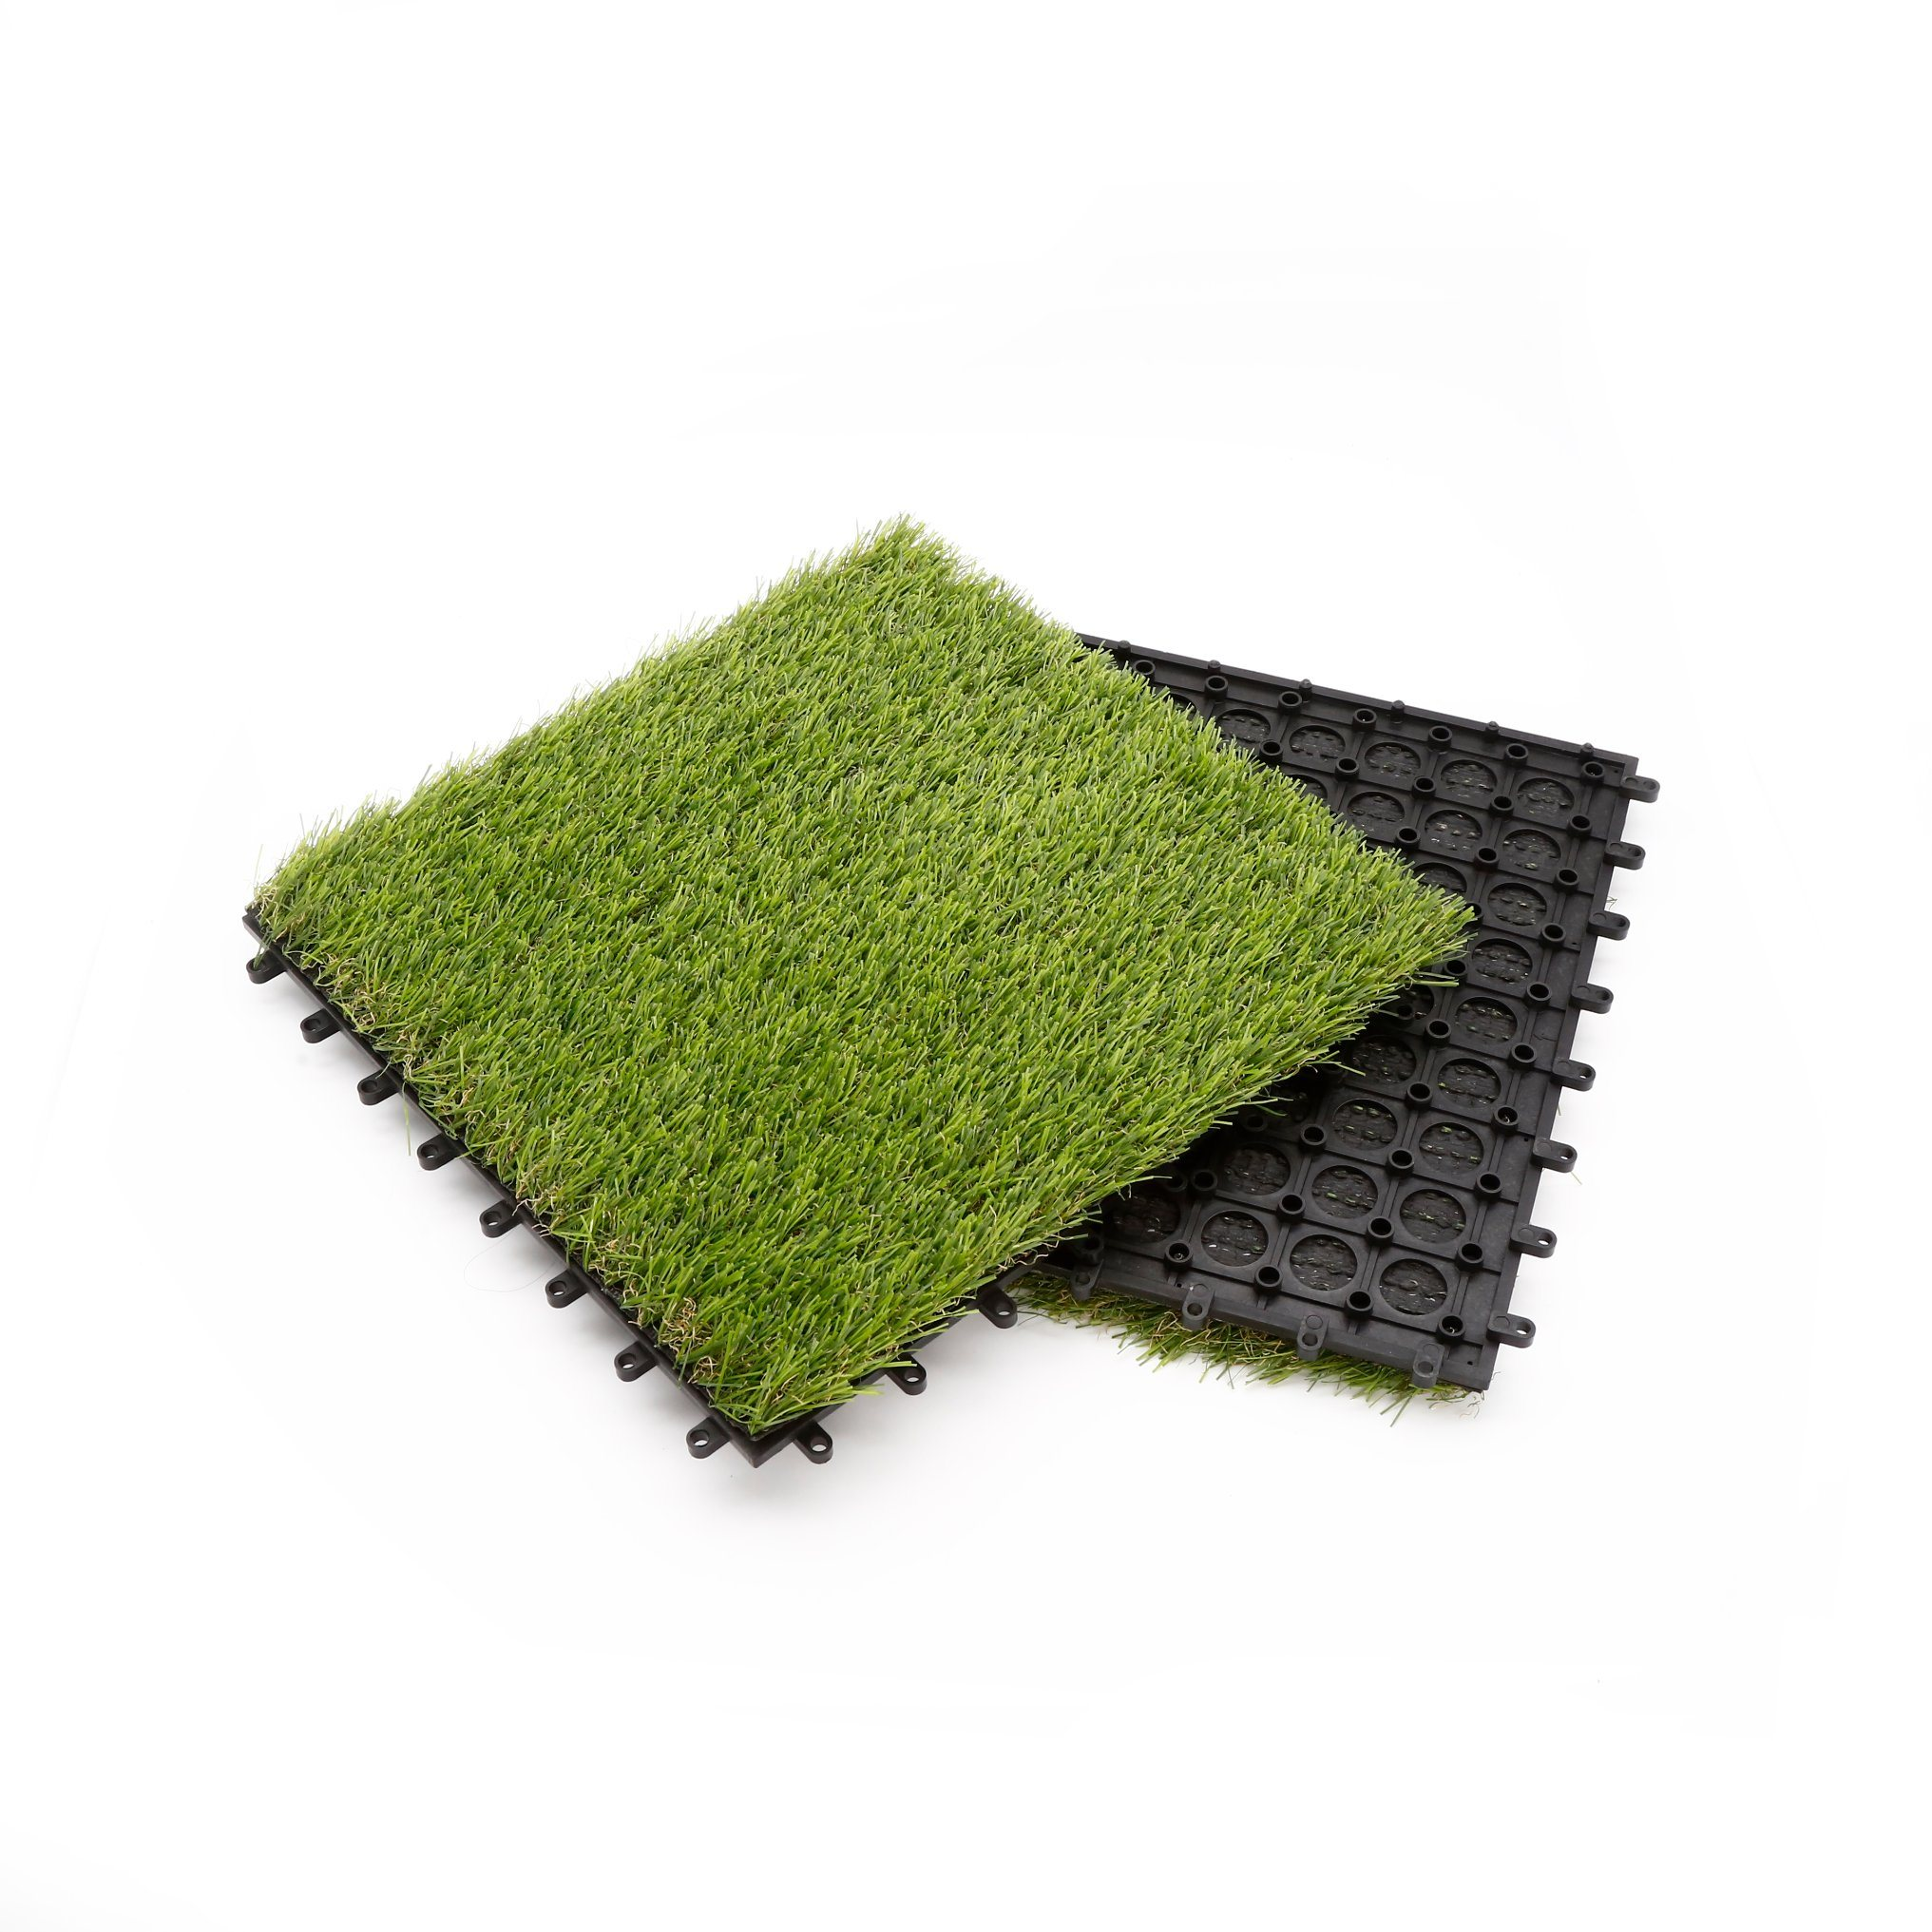 Image of: China Diy Interlocking Tile Playground Outdoor Carpet Artificial Grass Photos Pictures Made In China Com